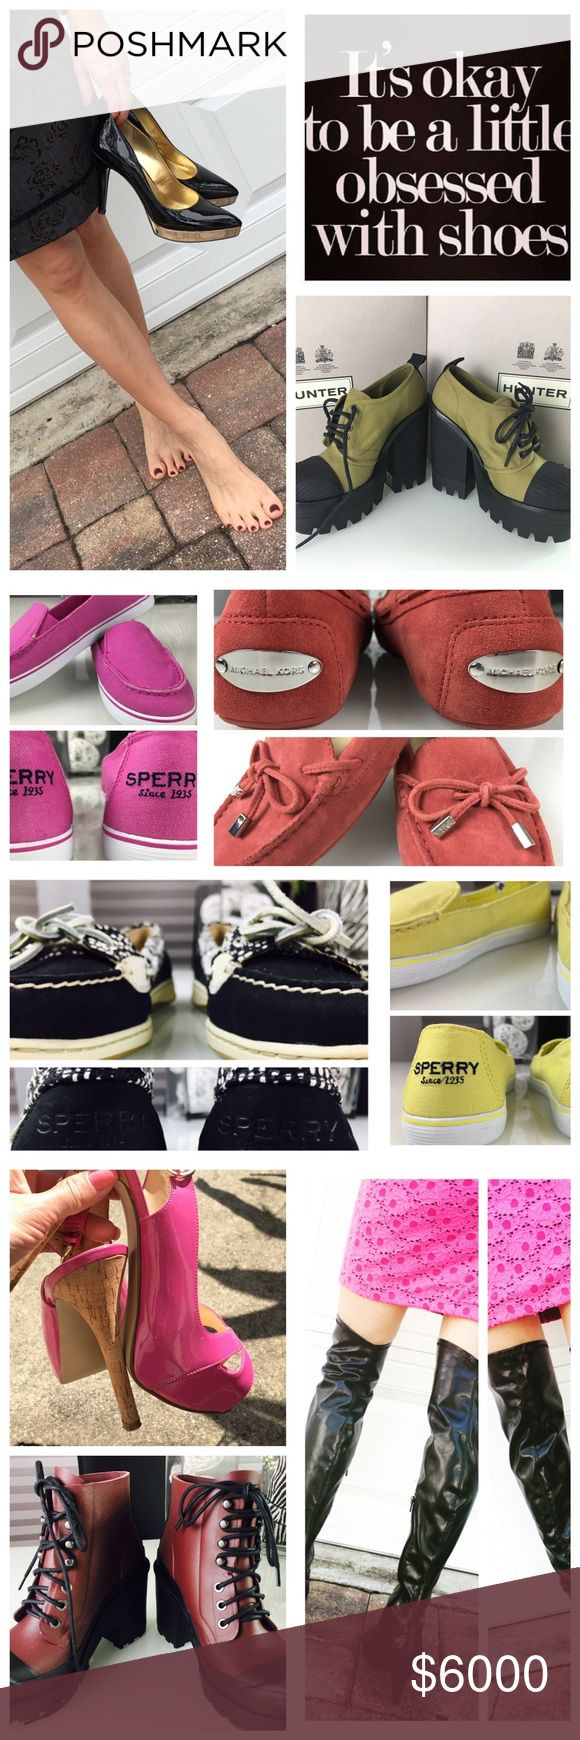 1000+ ideas about Brand Name Shoes on Pinterest   Large ...